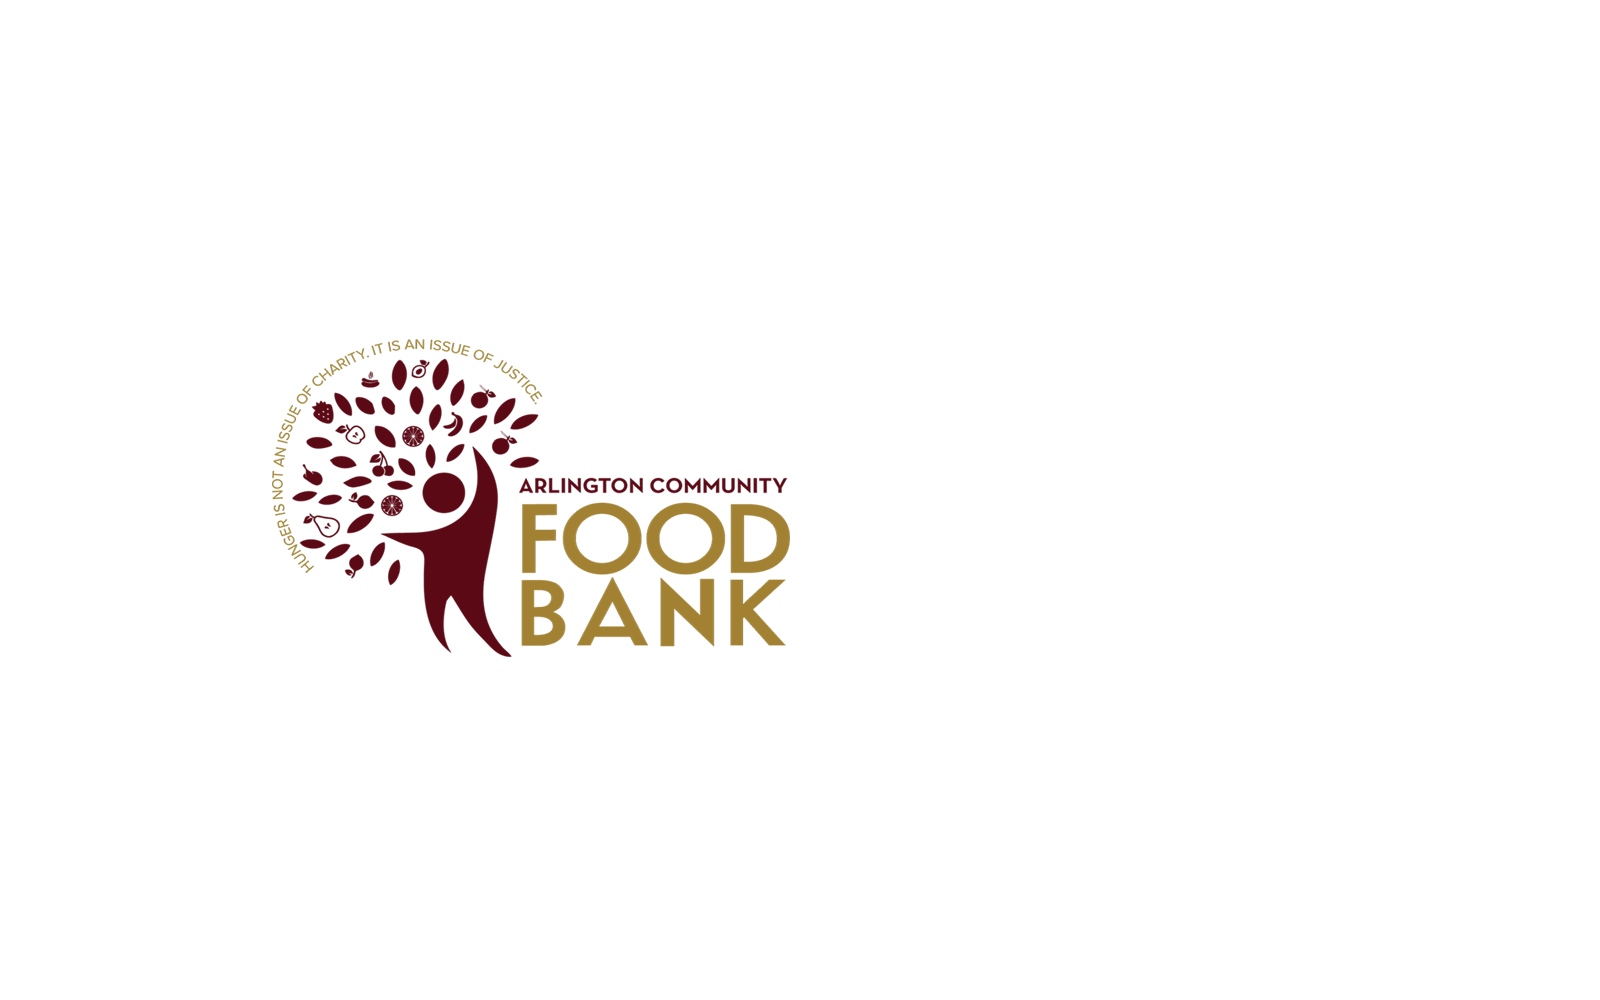 Donate to the Arlington Community Food Bank image